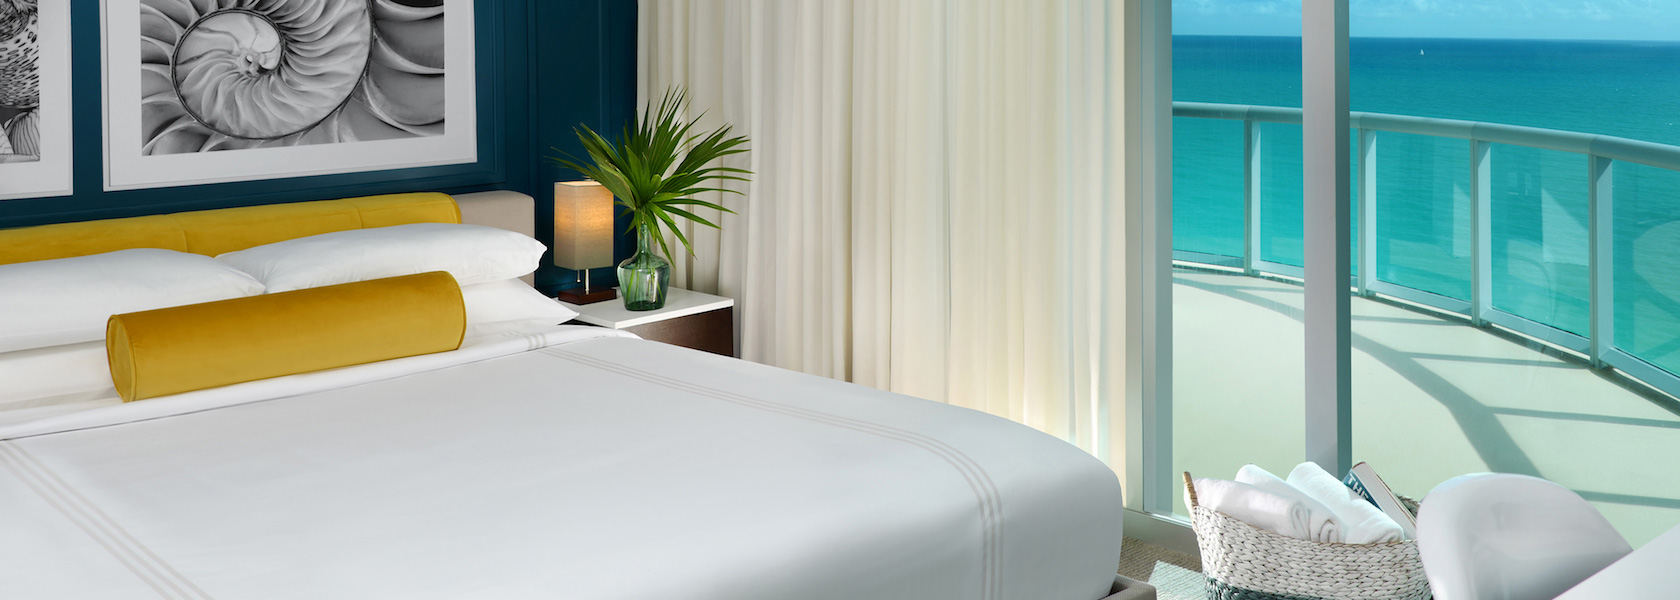 Solé Miami guestroom showing bed with ocean view